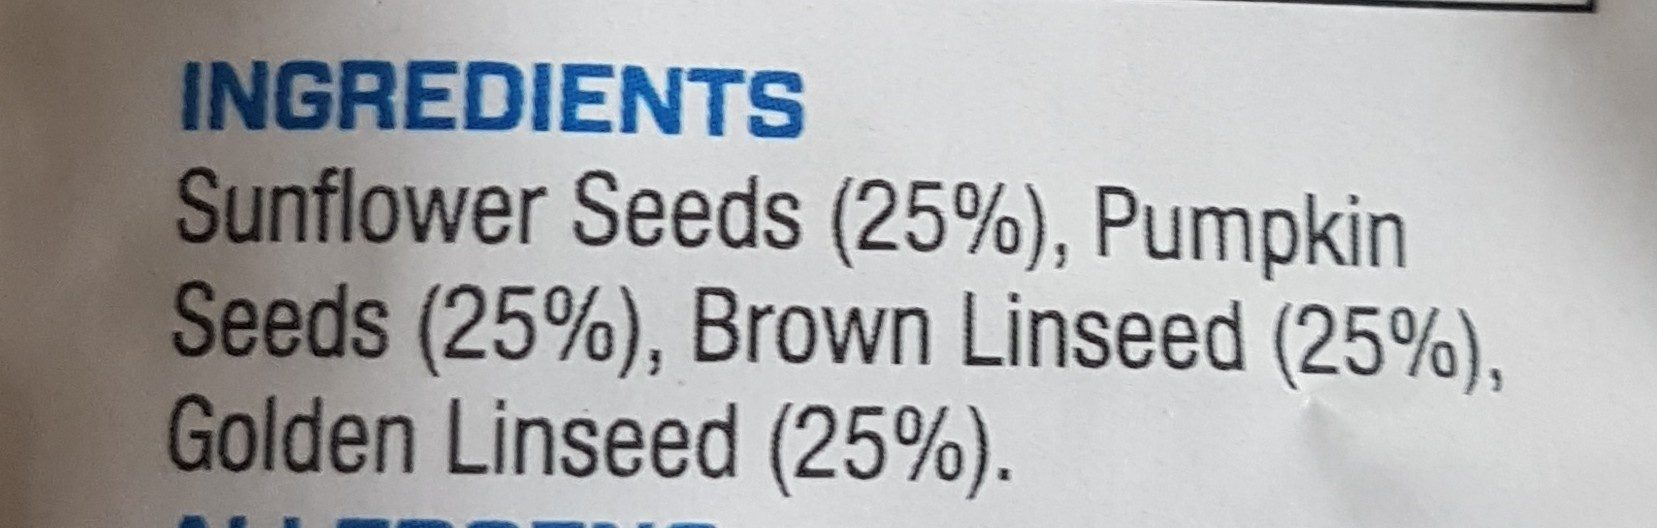 Omega Seed Mix - Ingredients